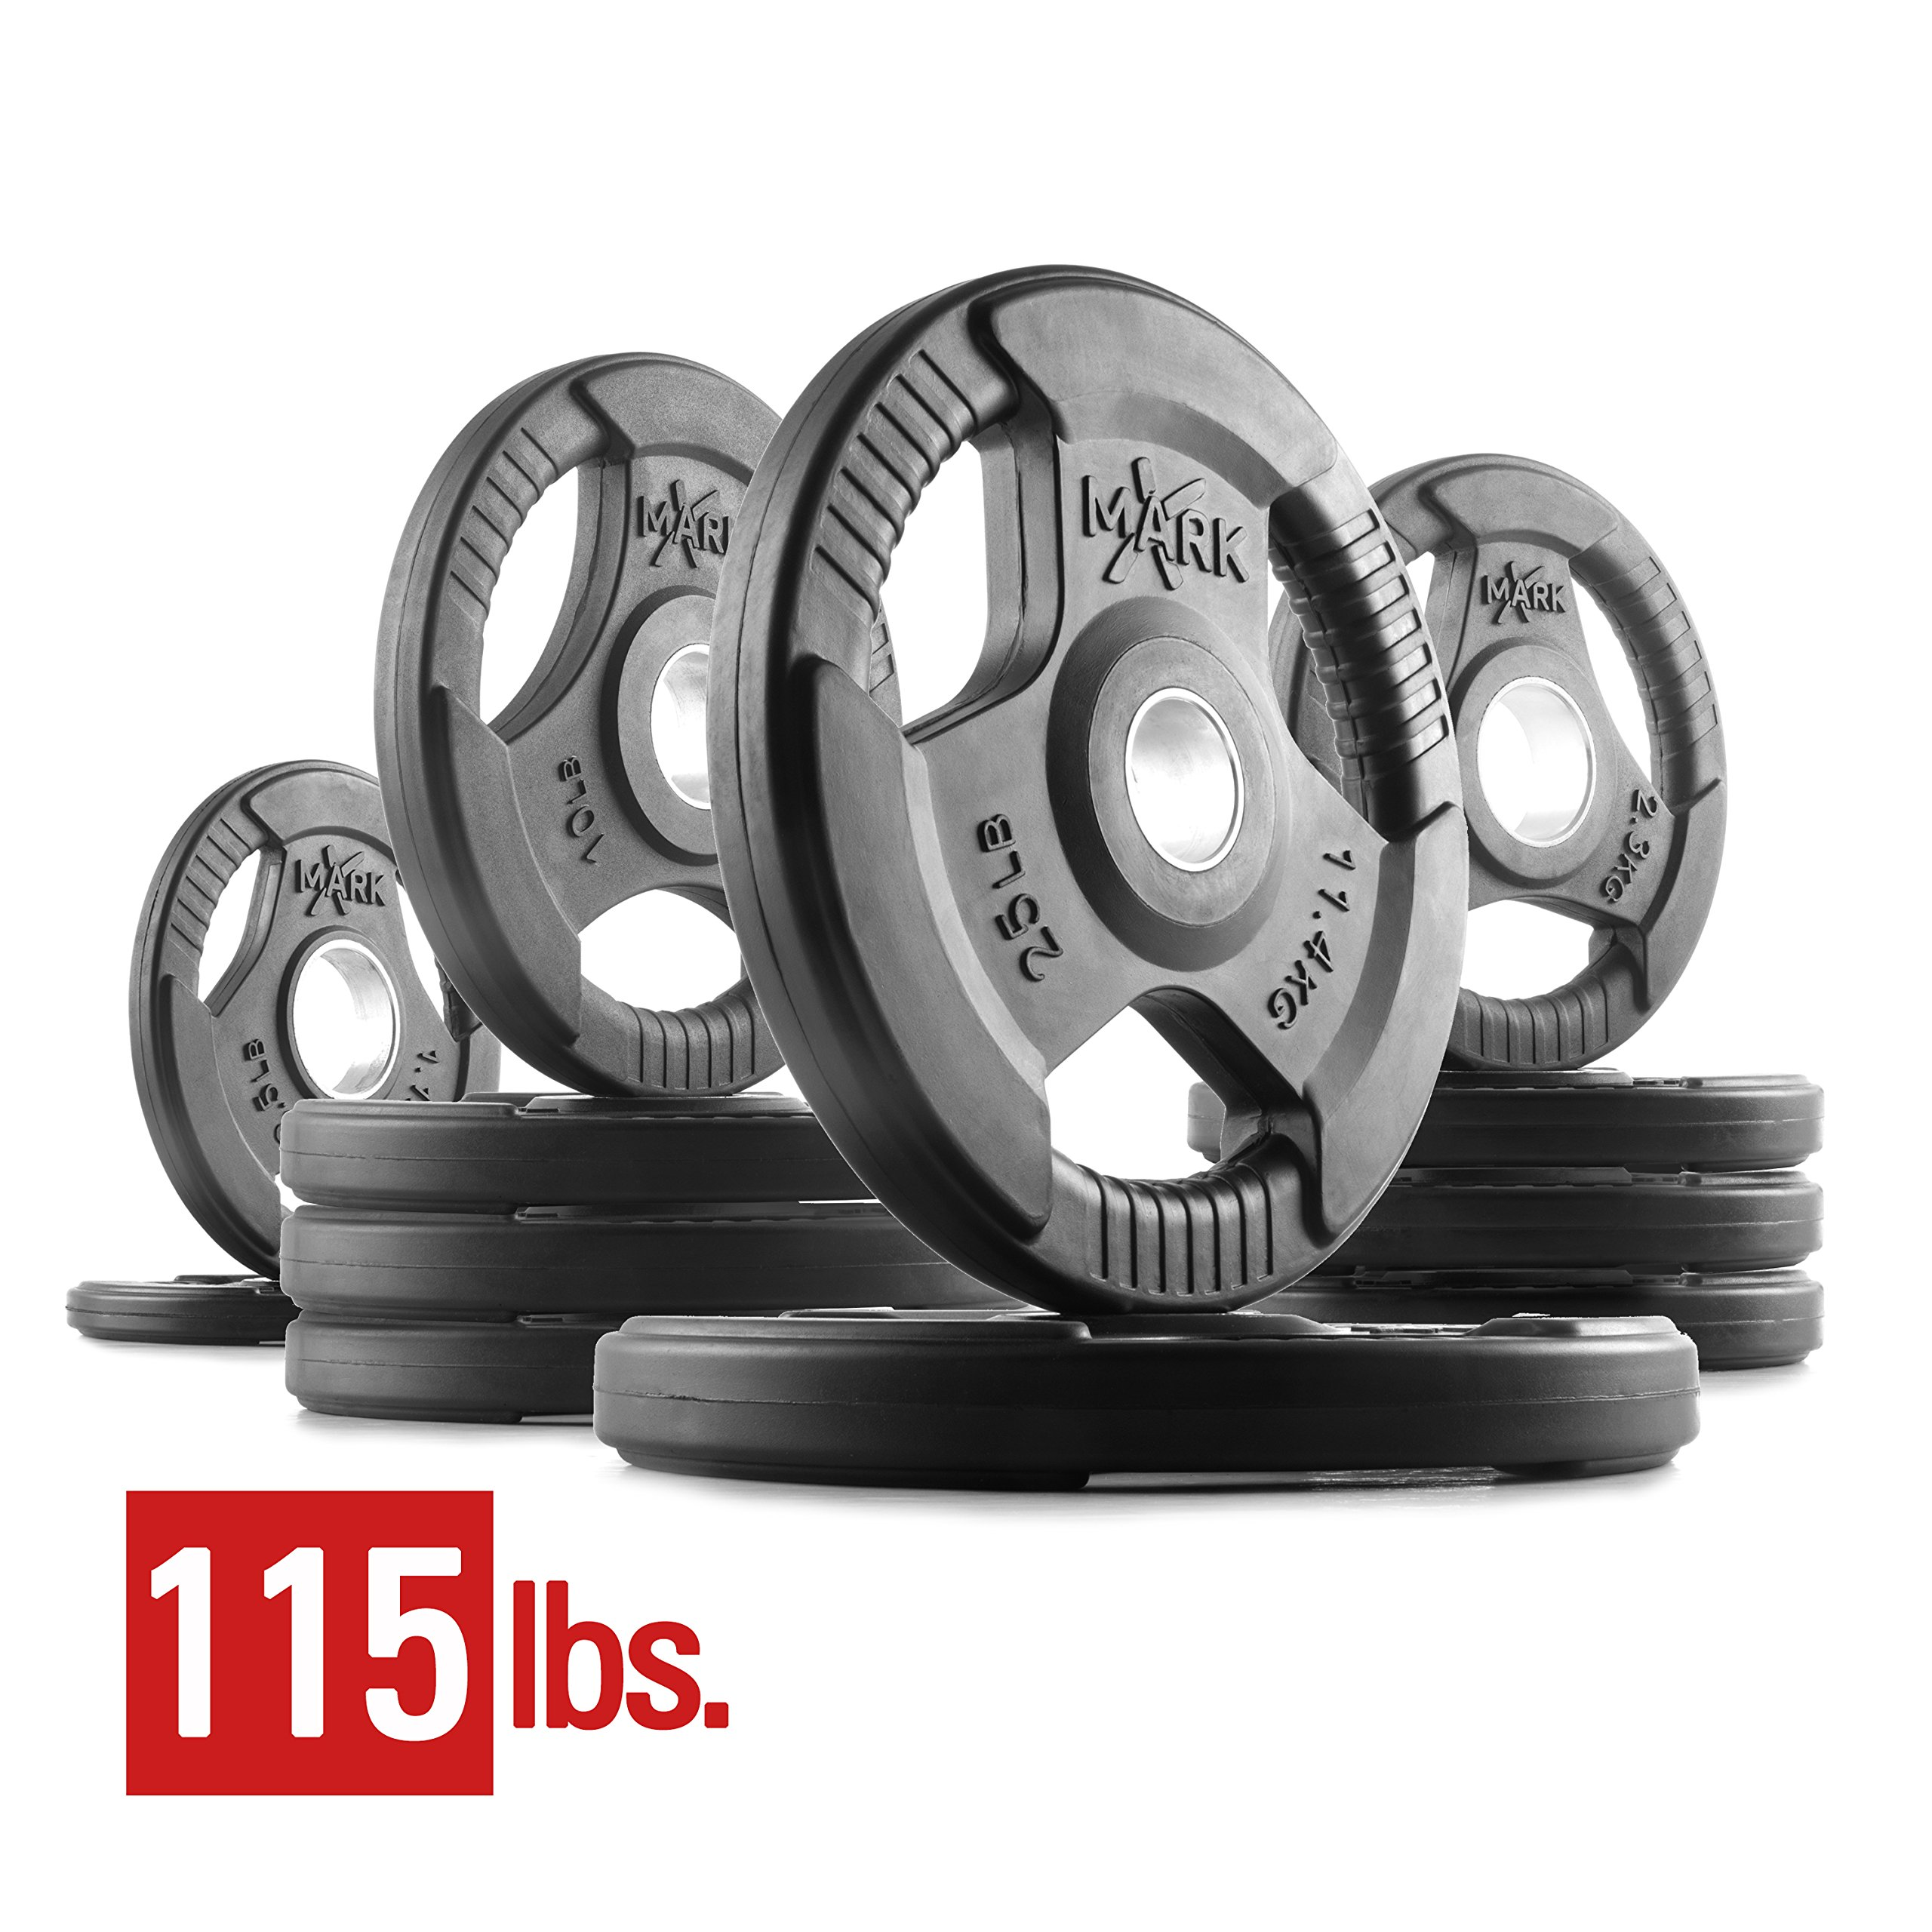 XMark Fitness XM-3377-BAL-115 Rubber Coated Olympic Plates